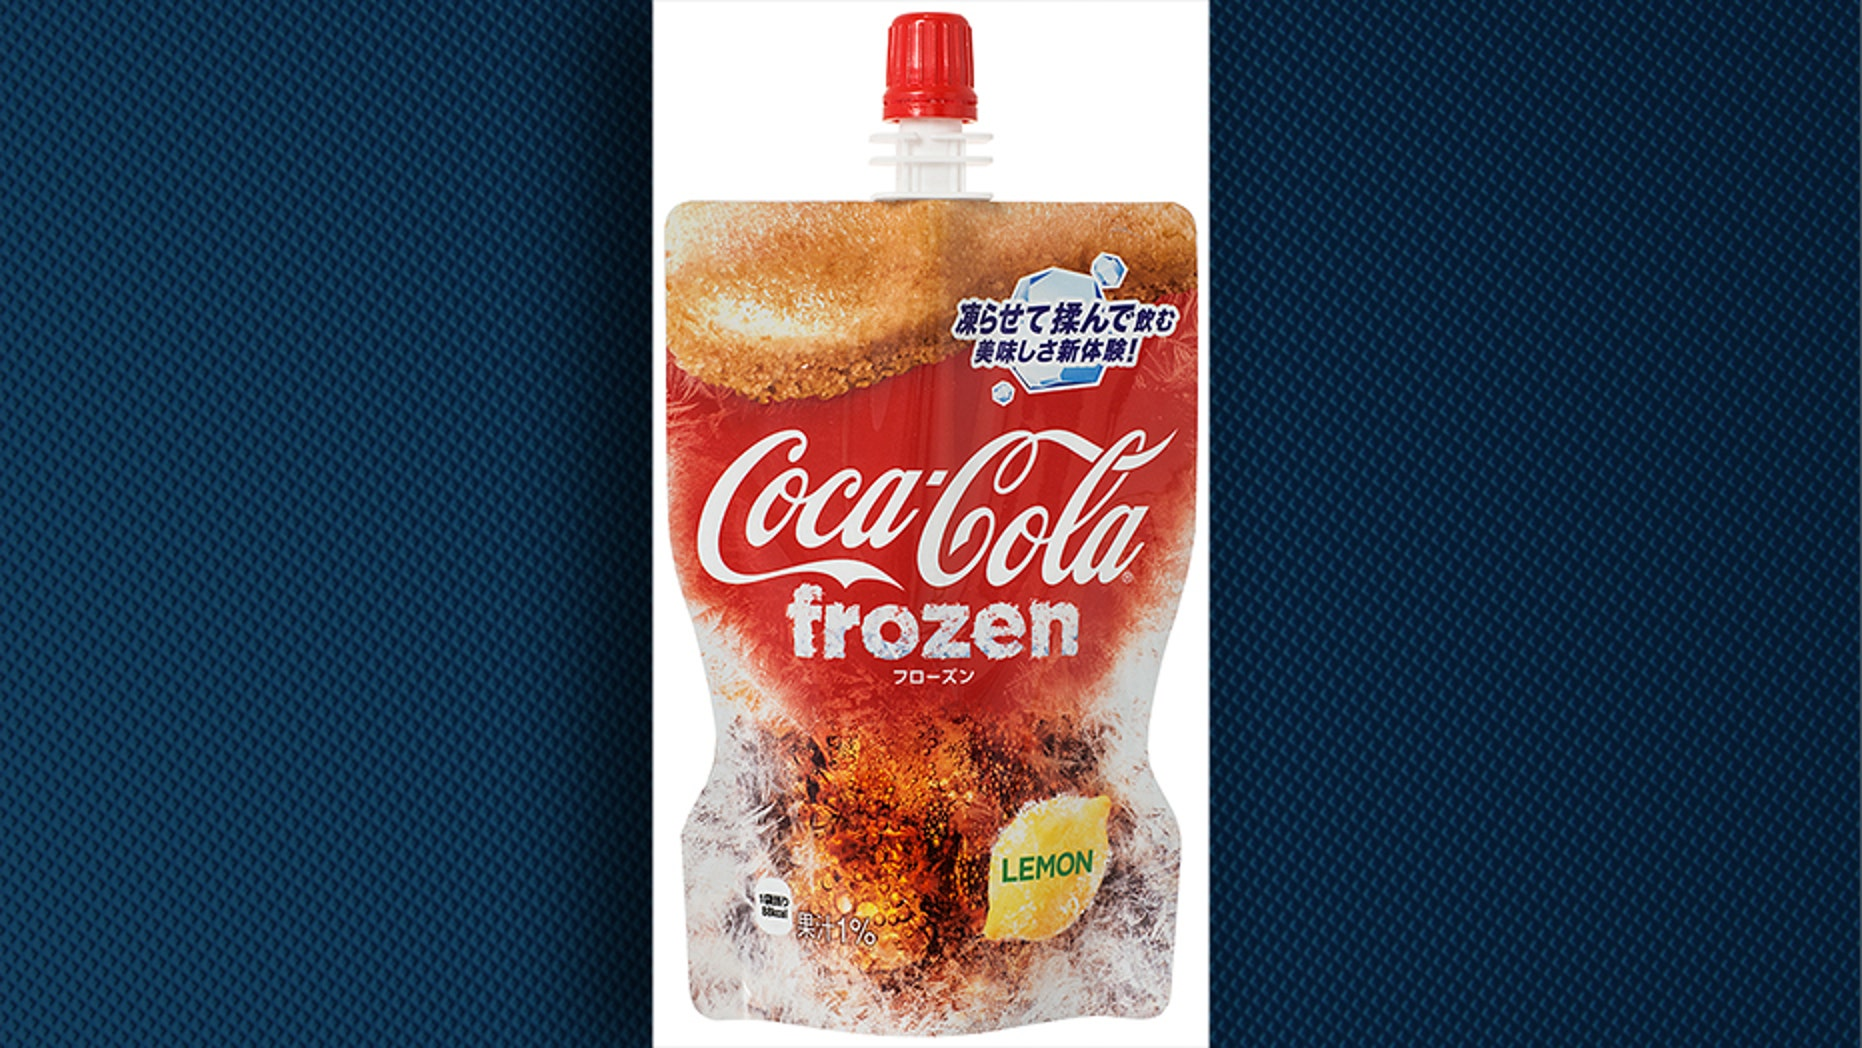 Coca-Cola Japan says the frozen Coca-Cola pouches have actually been in development for eight years and went through 100 prototypes before landing on this design and formula.